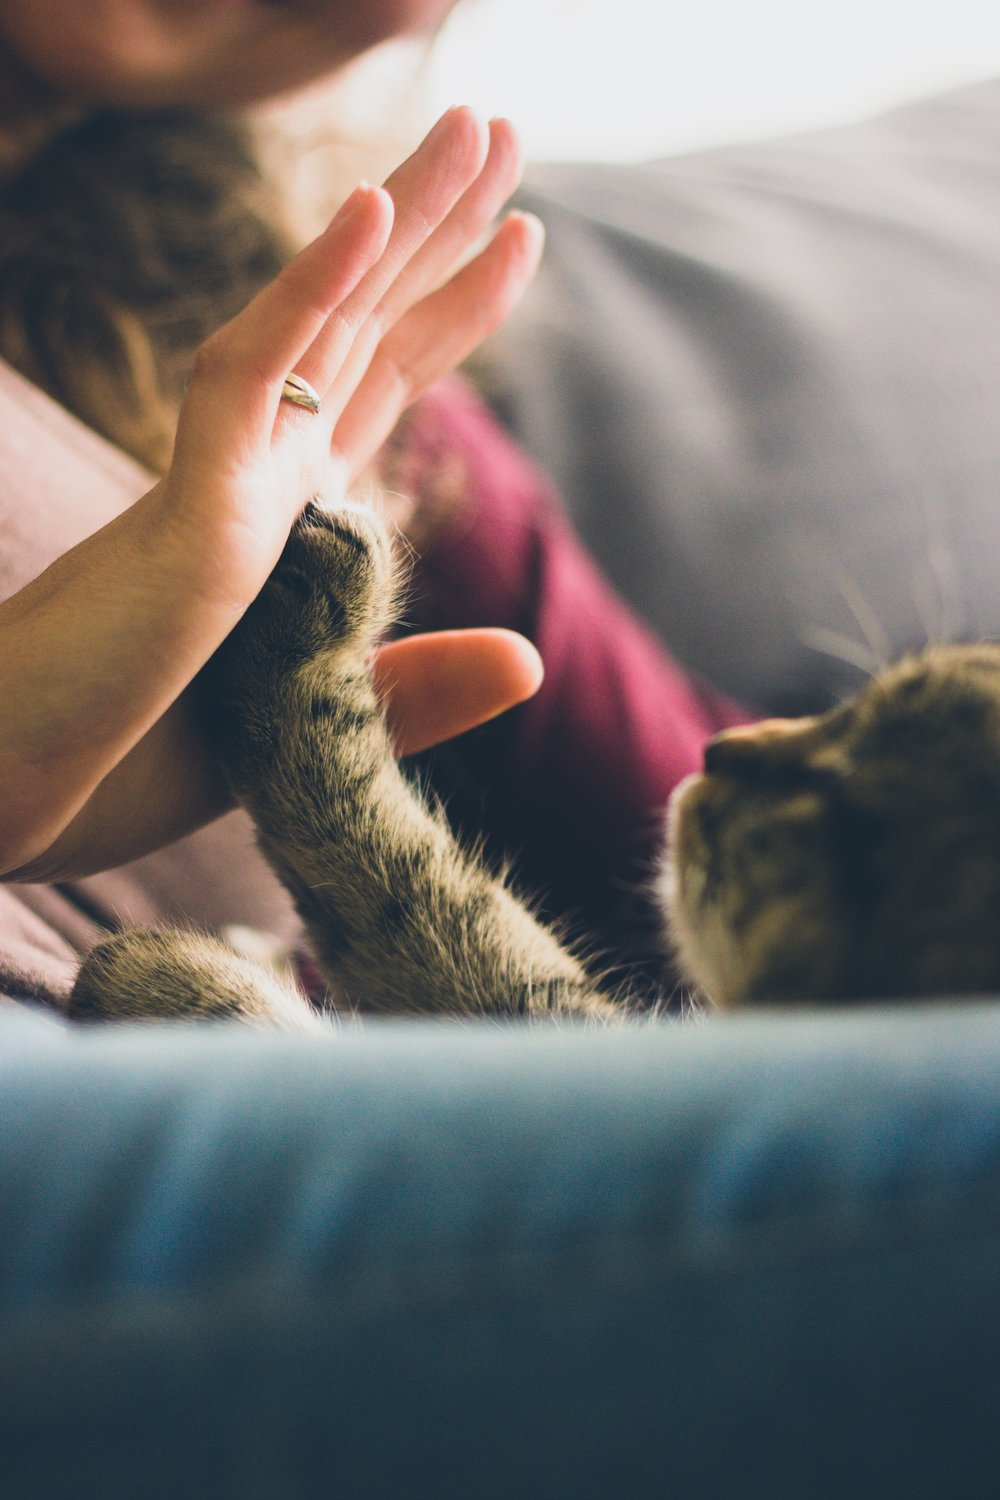 Guys, I know I need to be finishing that up,but my cat is giving hi-fives right now...